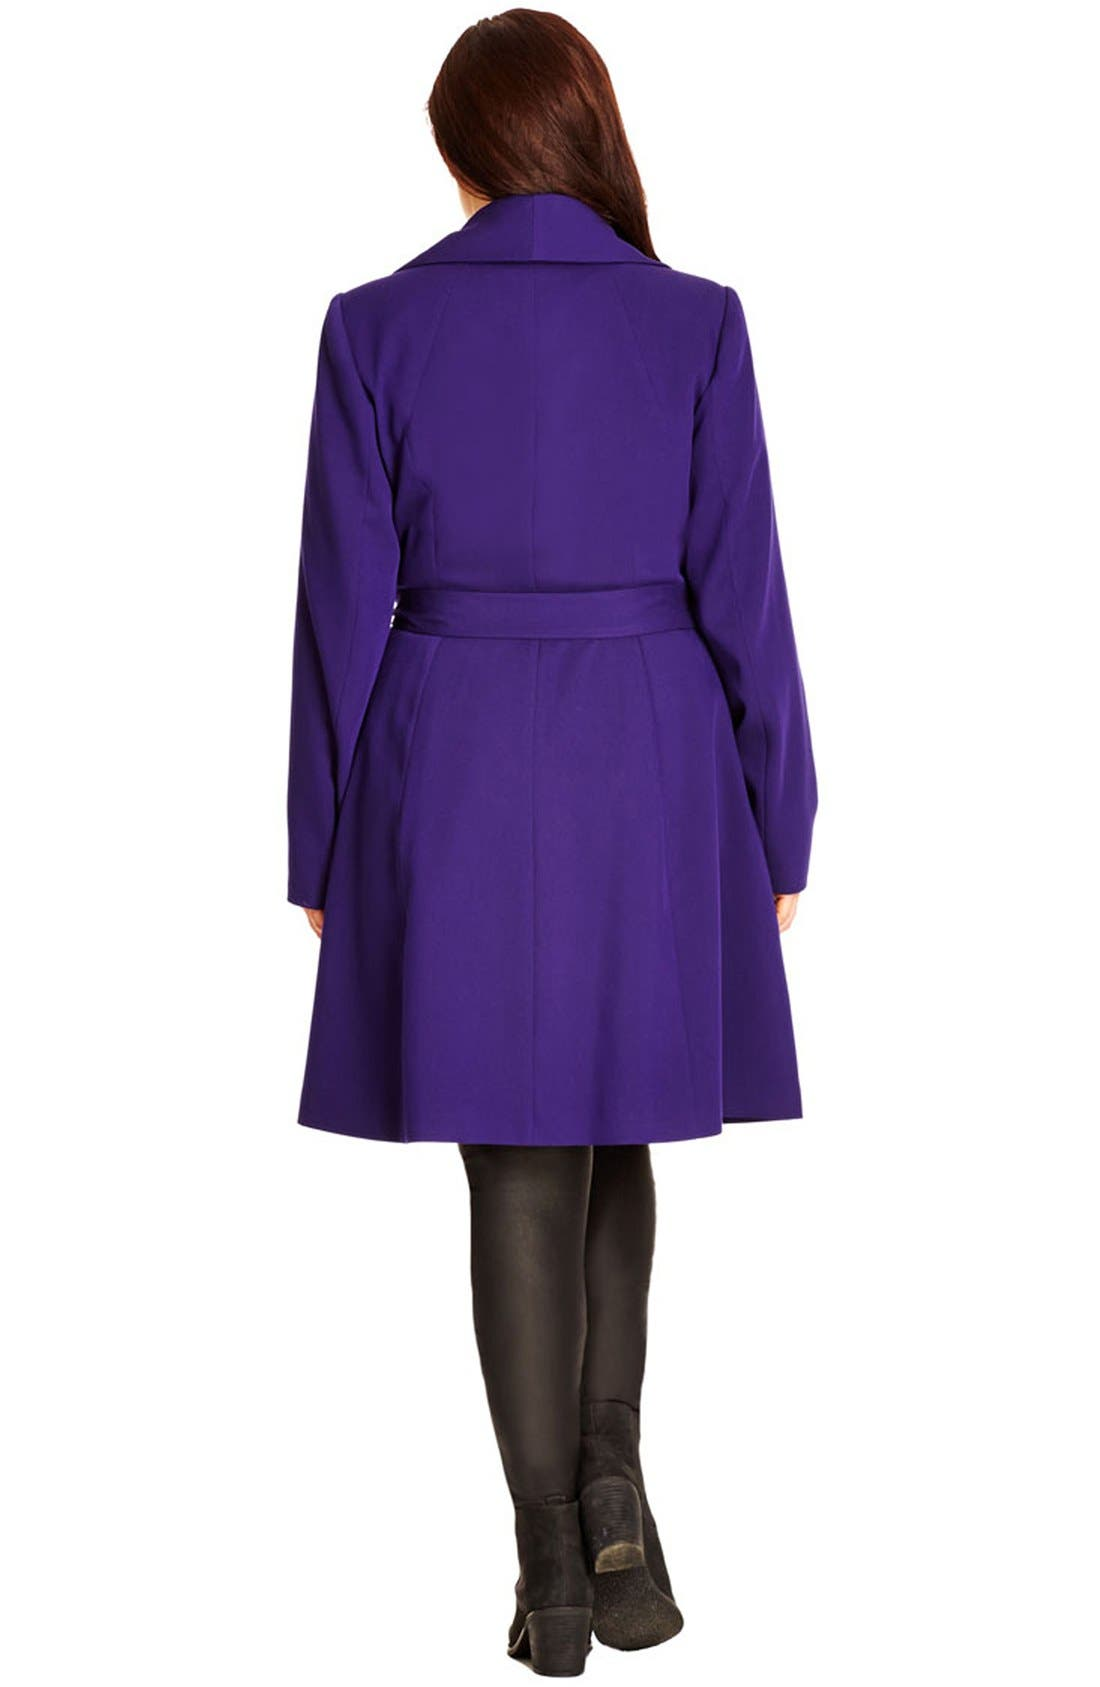 Alternate Image 2  - City Chic 'So Chic' Colored Trench Coat (Plus Size)